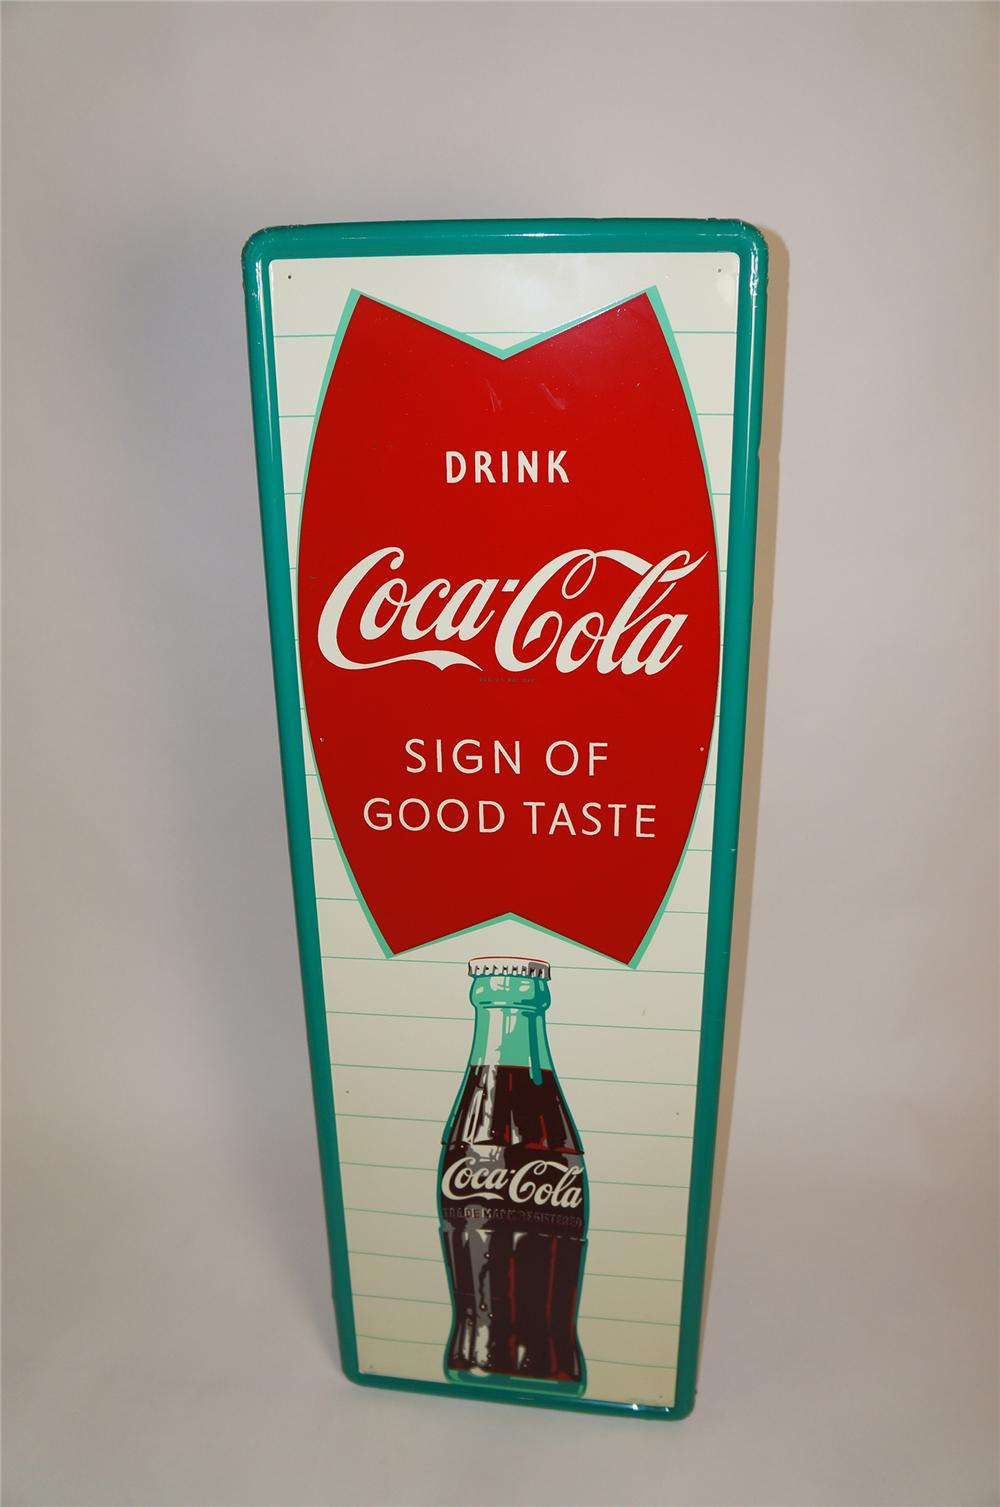 Good looking N.O.S. Drink Coca-Cola Sign of Good Taste self-f